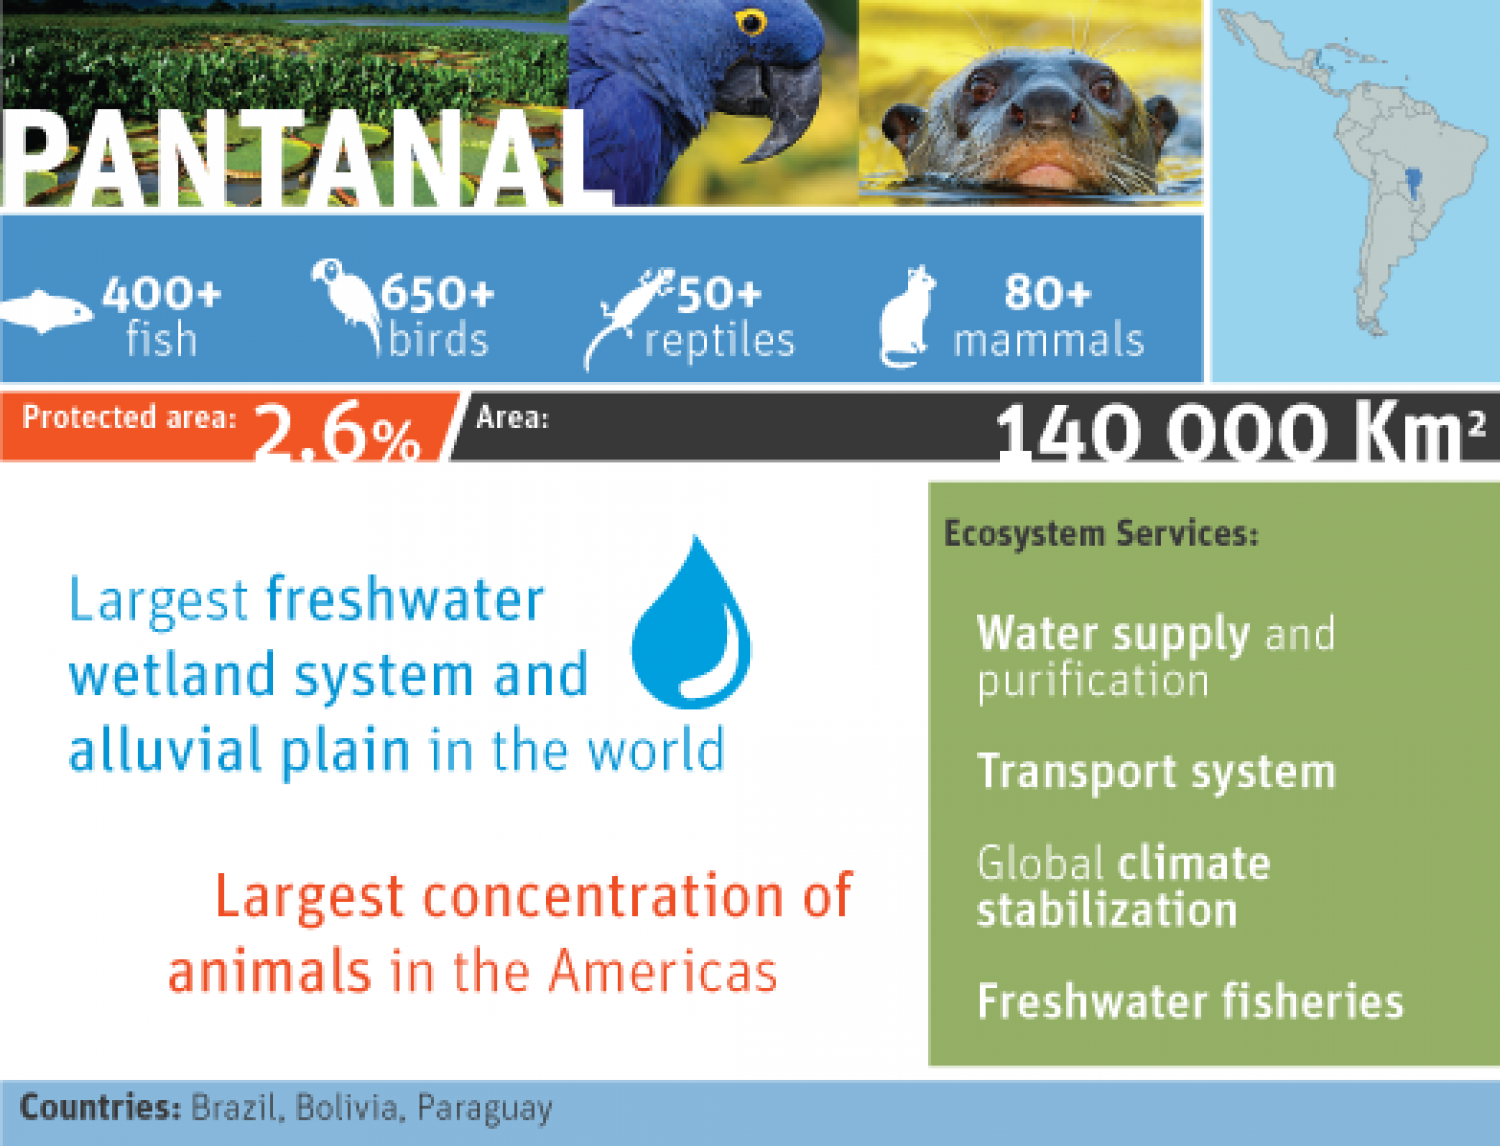 biodiversity in pantanal Infographic